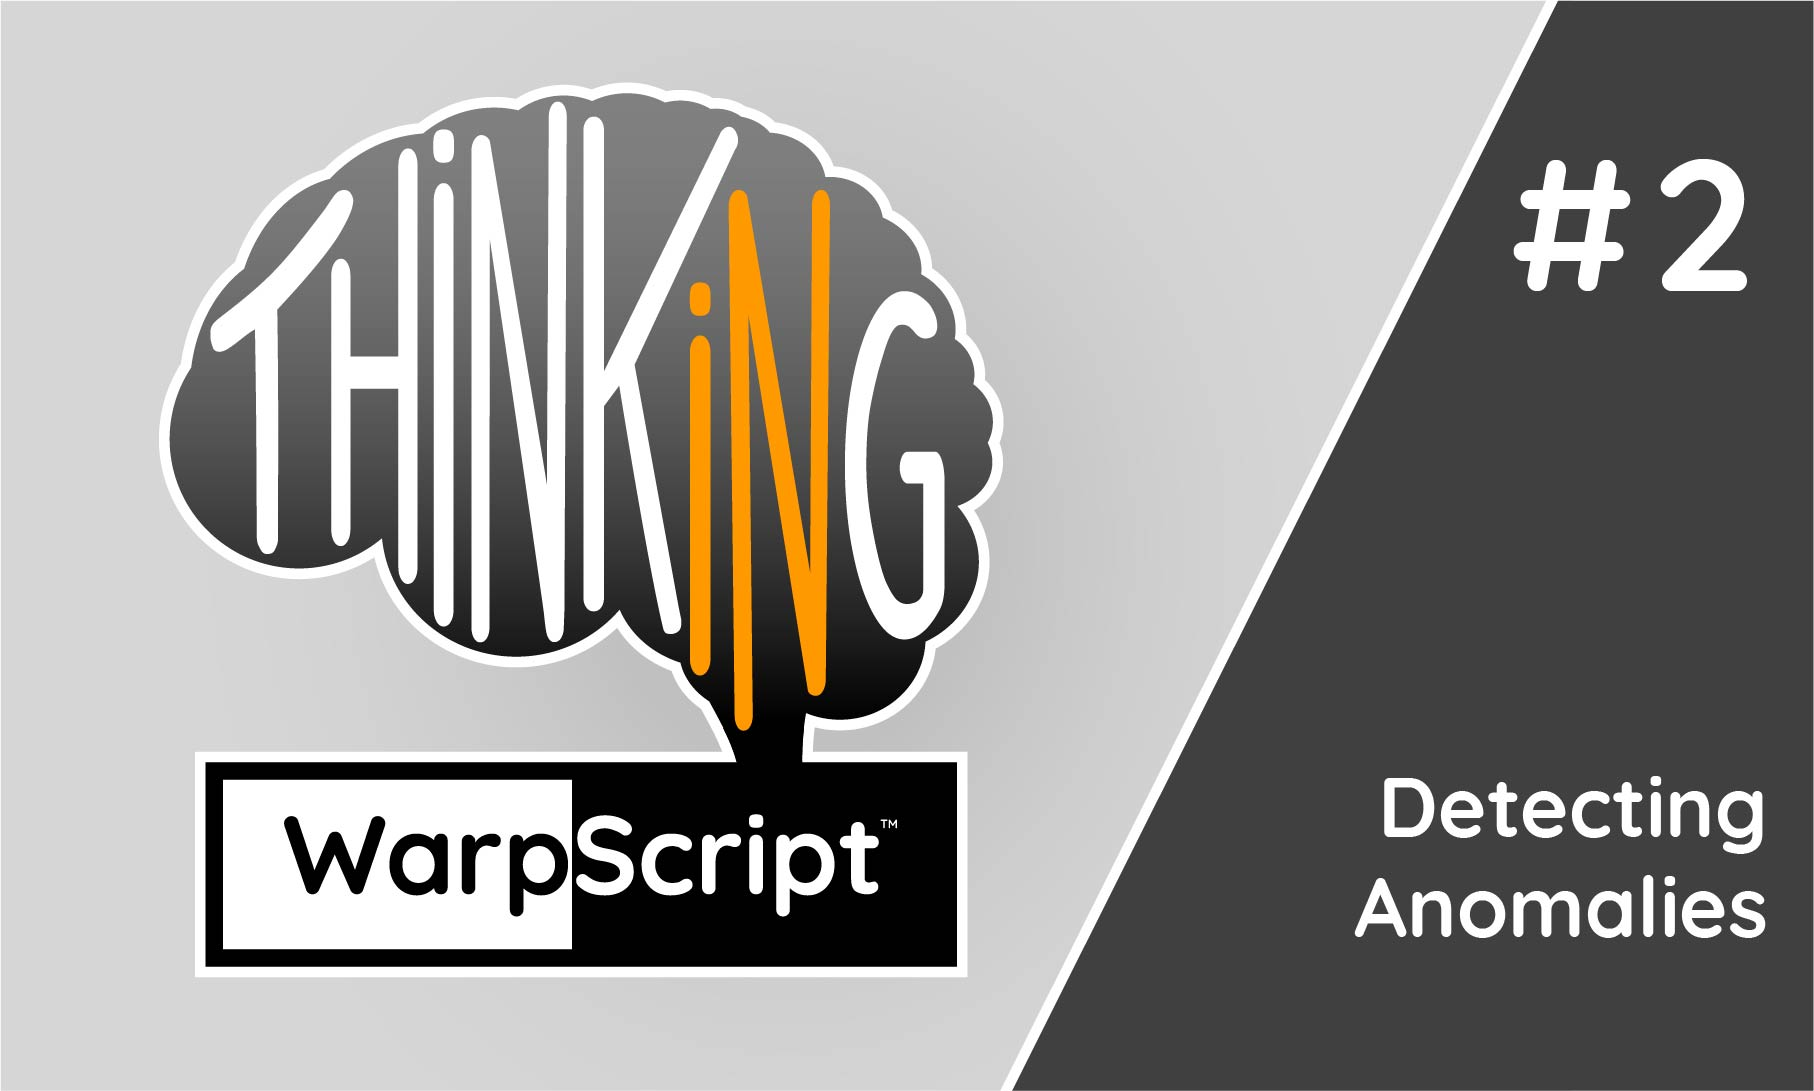 Thinking in WarpScript™ - Detecting anomalies - SenX